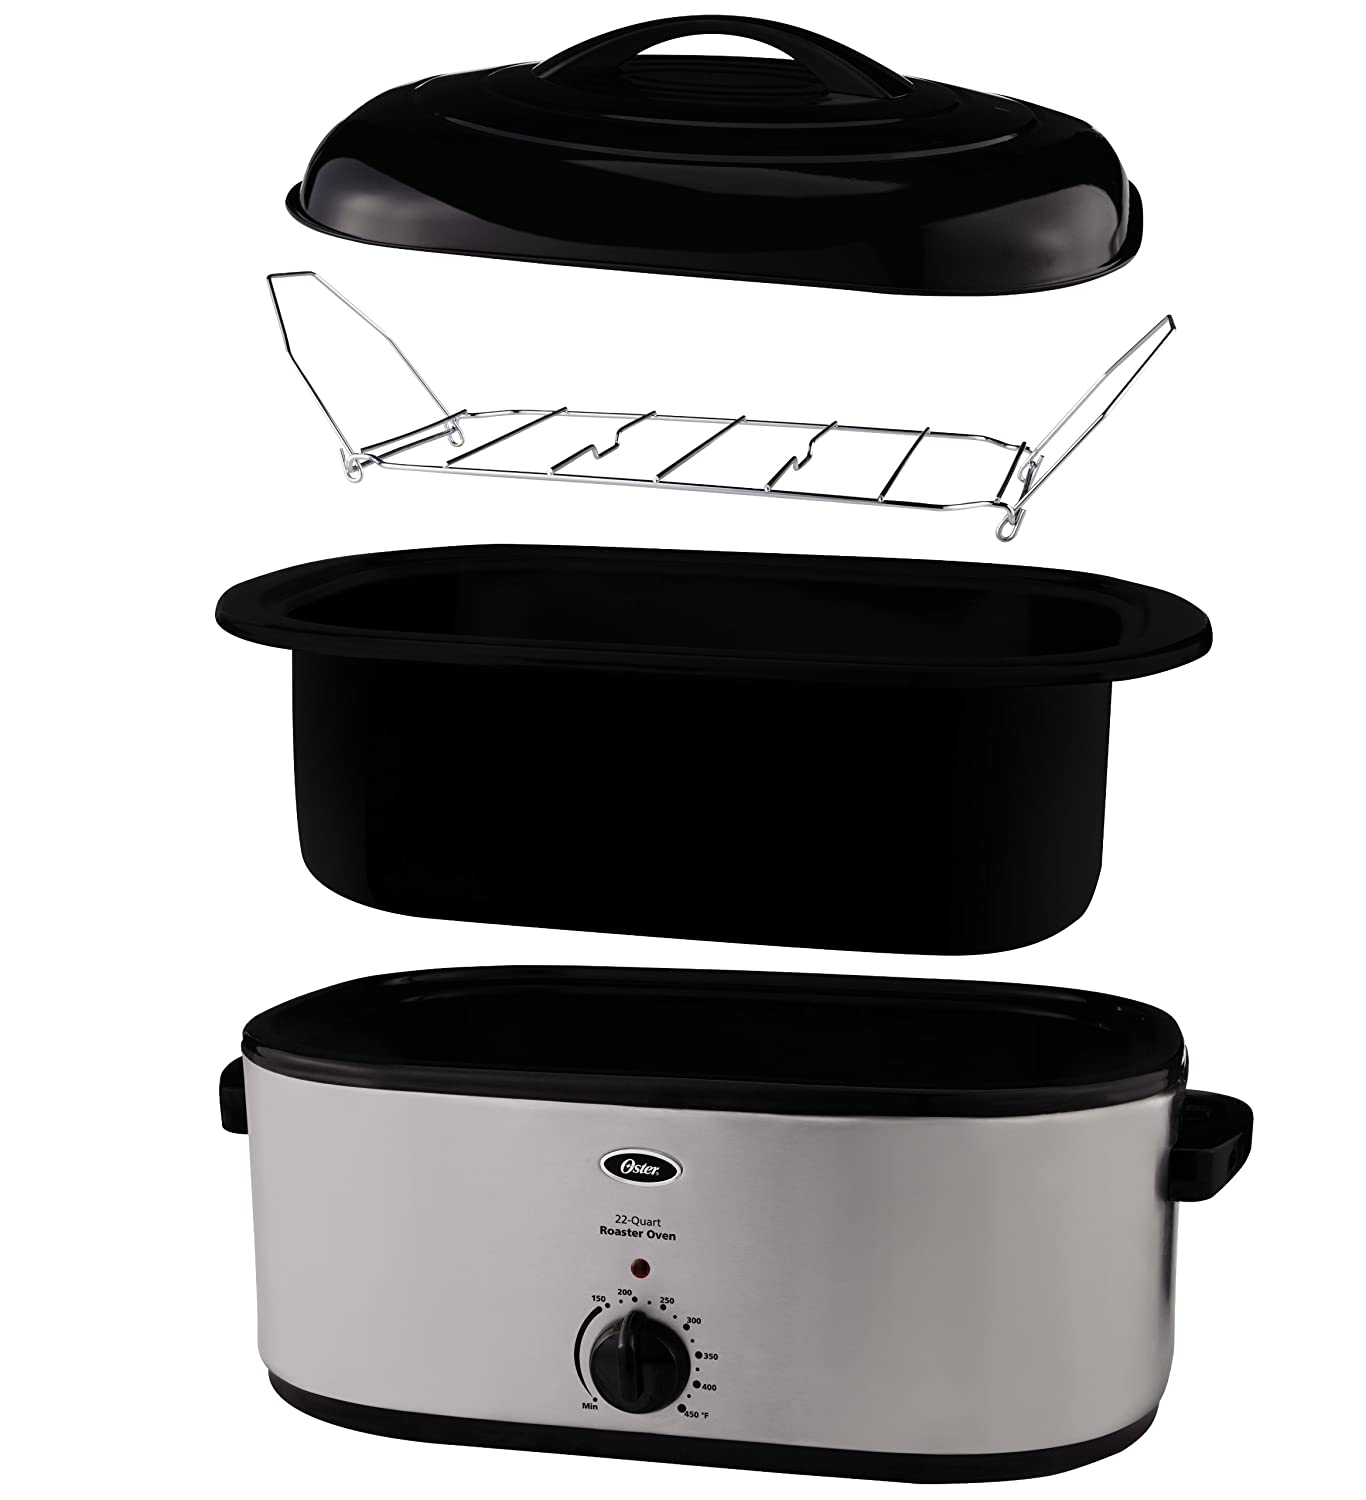 Oster 18 Quart Roaster Oven With Self Basting Lid Black: What Is The Best Oster Roaster Oven? Top Pick • Grill